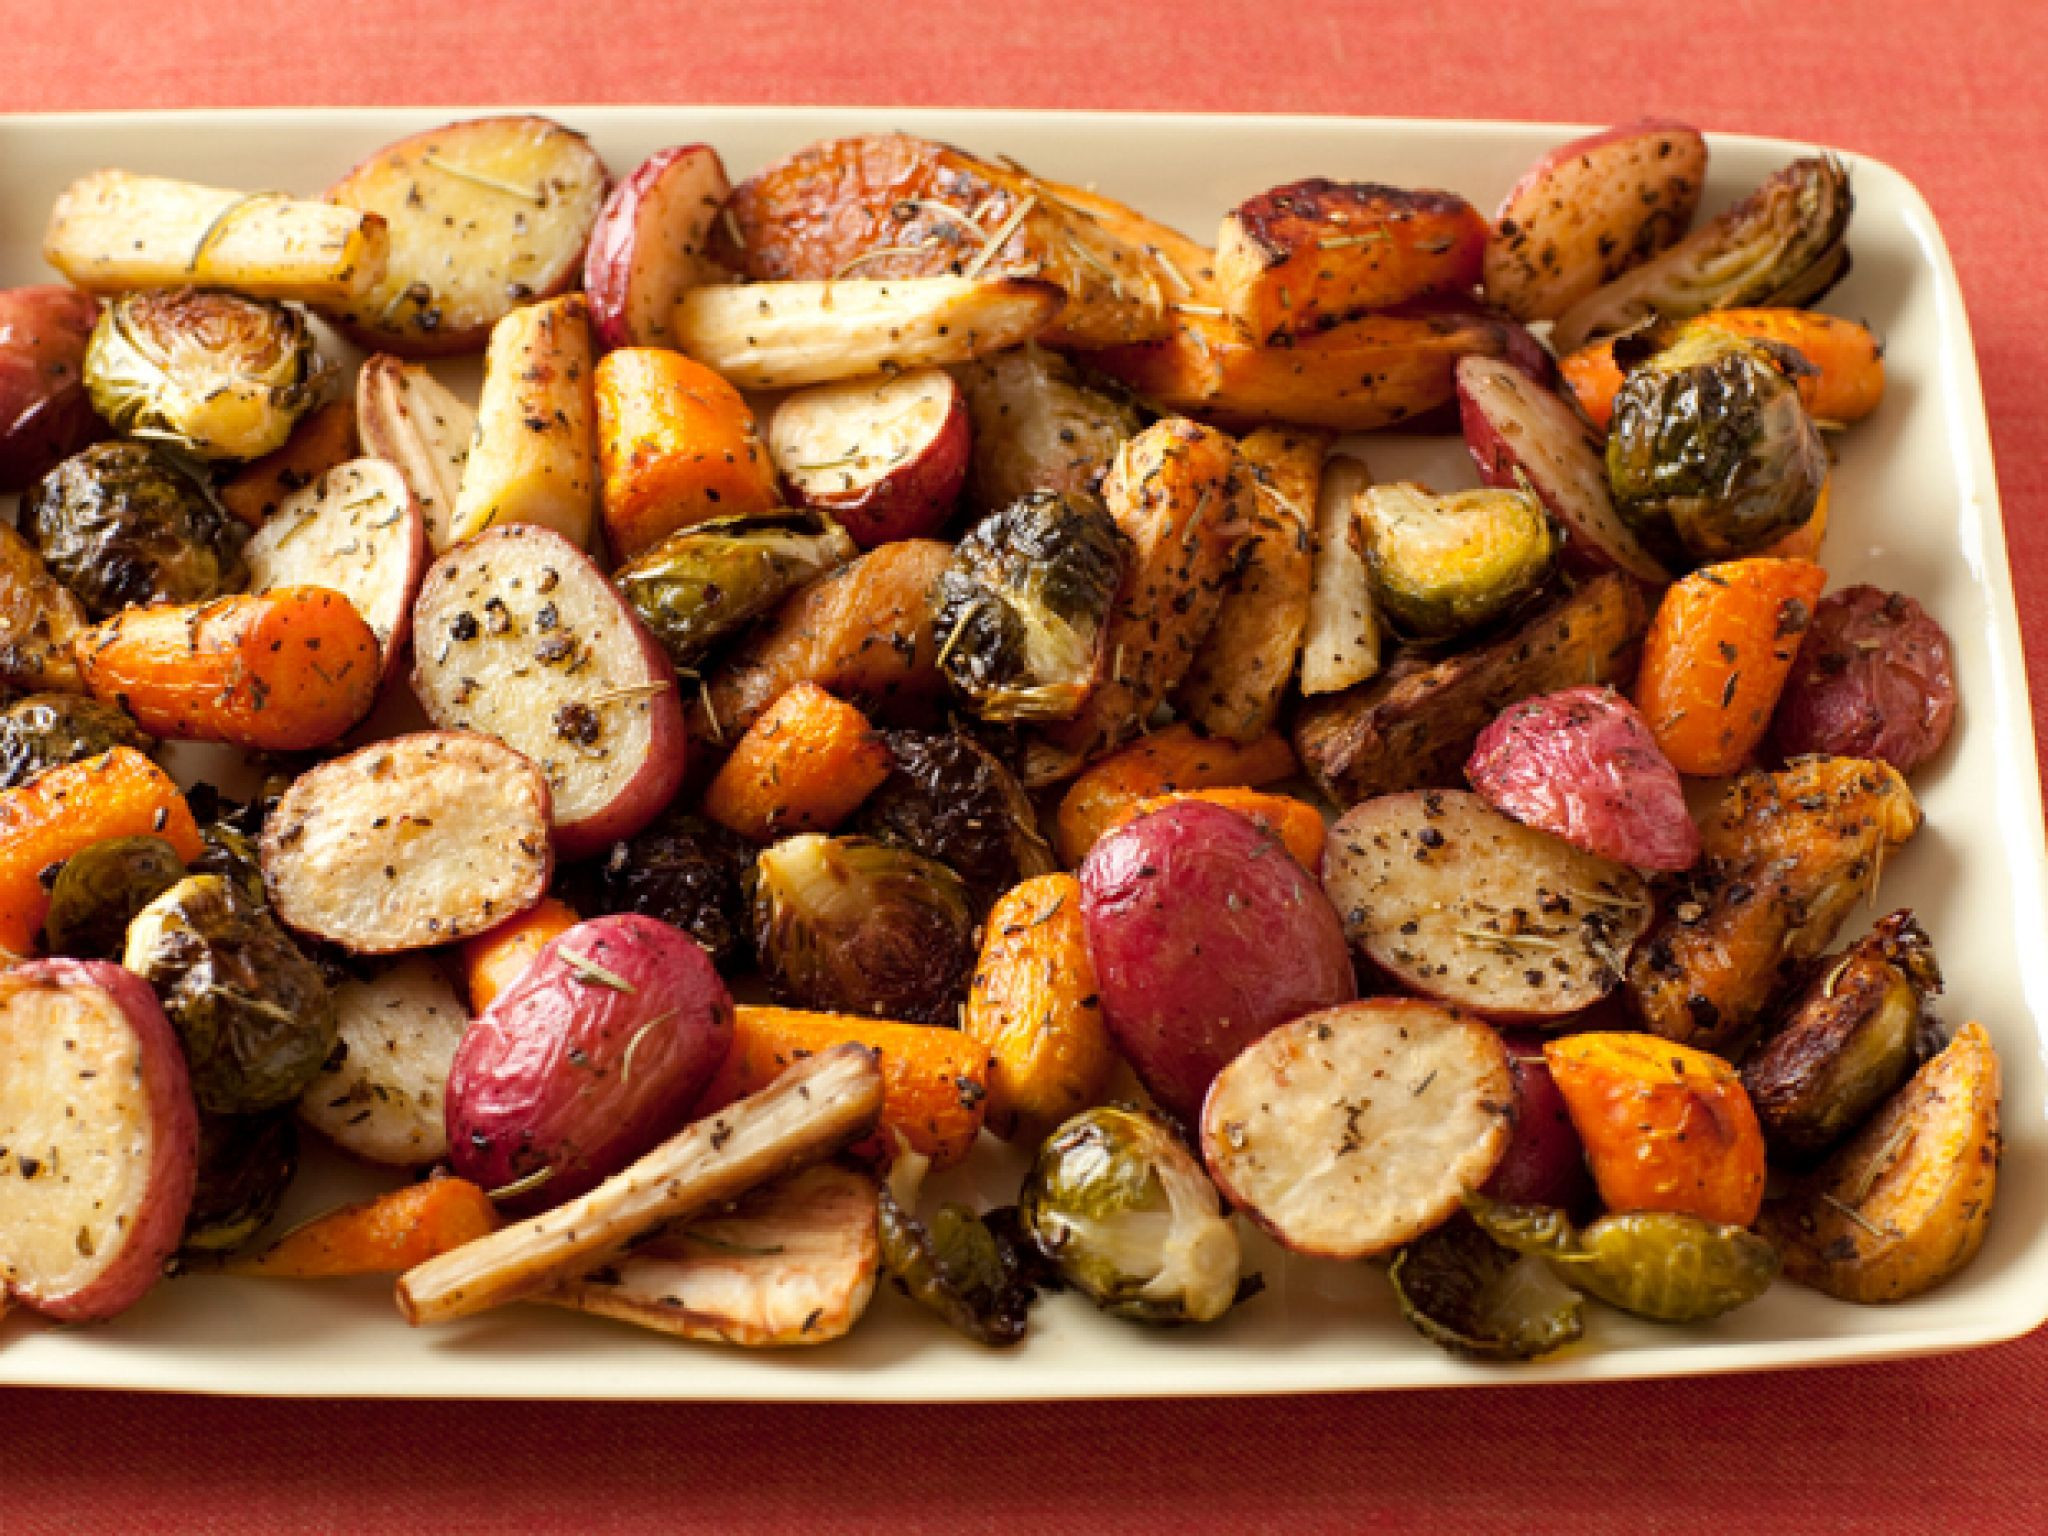 Thanksgiving Roasted Vegetables  100 Classic Thanksgiving Side Dish Recipes Food Network